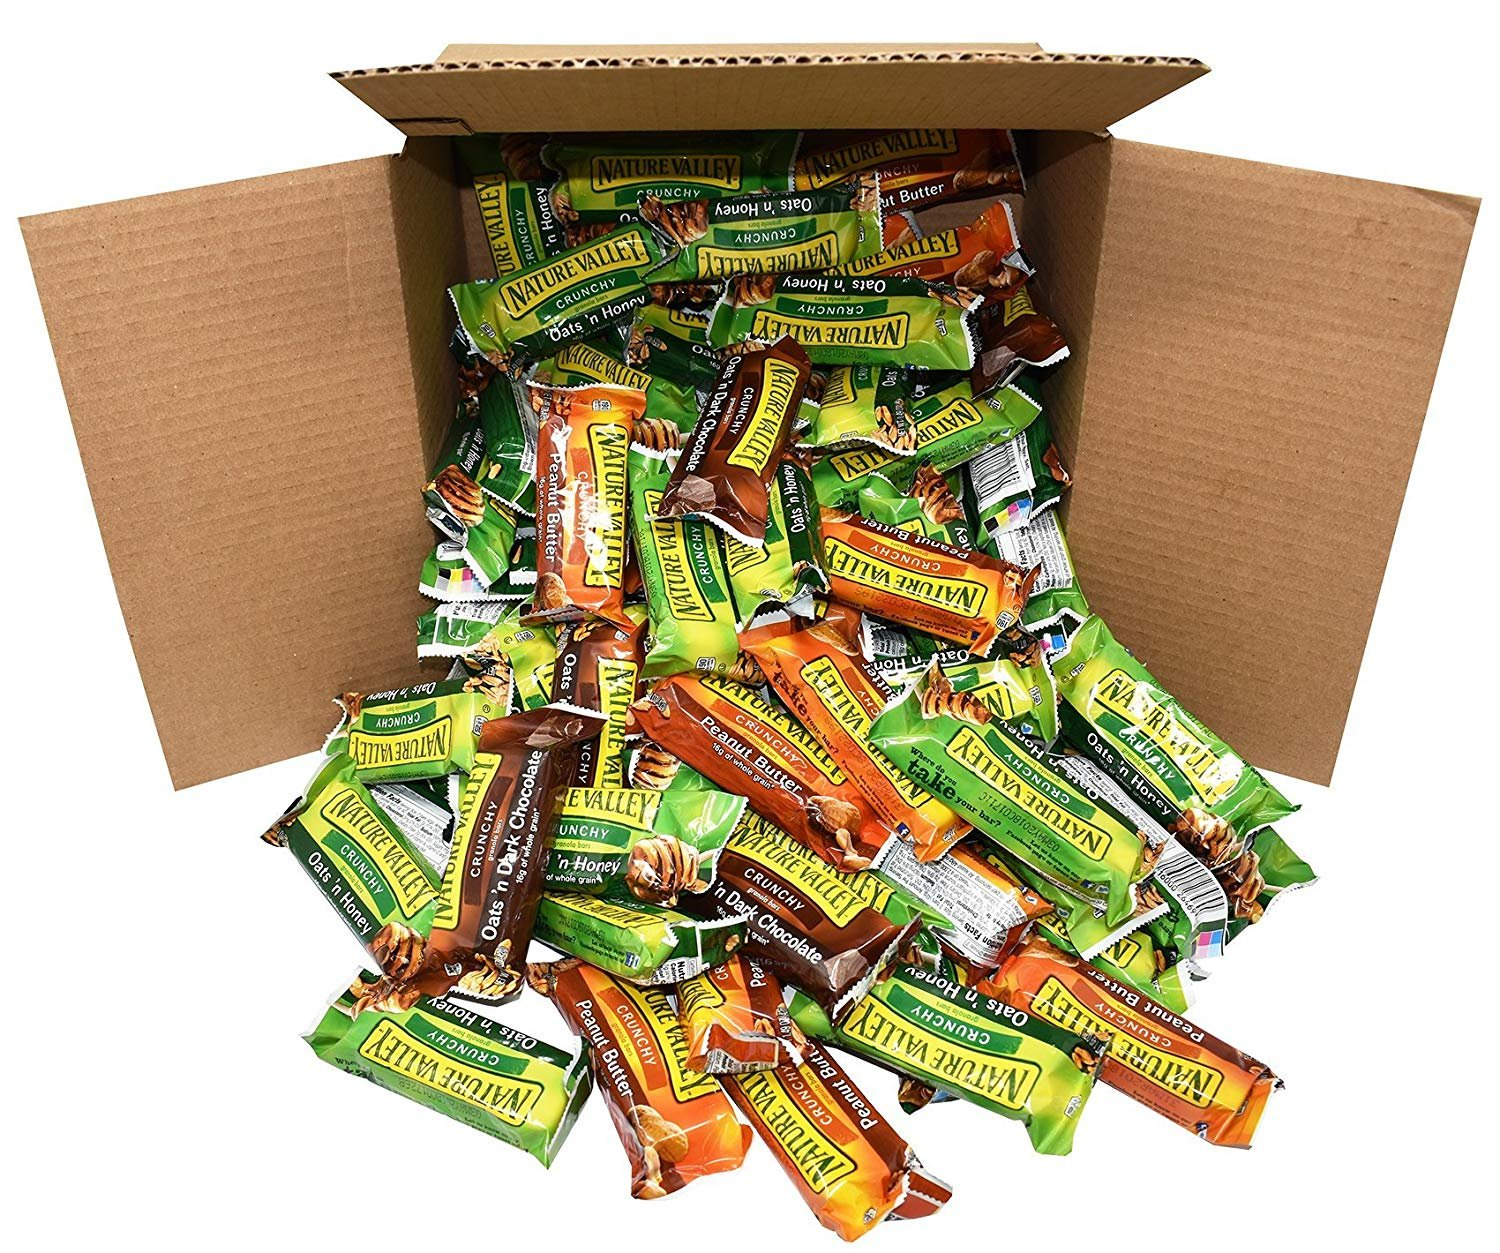 LUV BOX Nature Valley Bars Bulk Variety Pack (120 2-Packs) - Office Snacks, School Lunches, Meetings